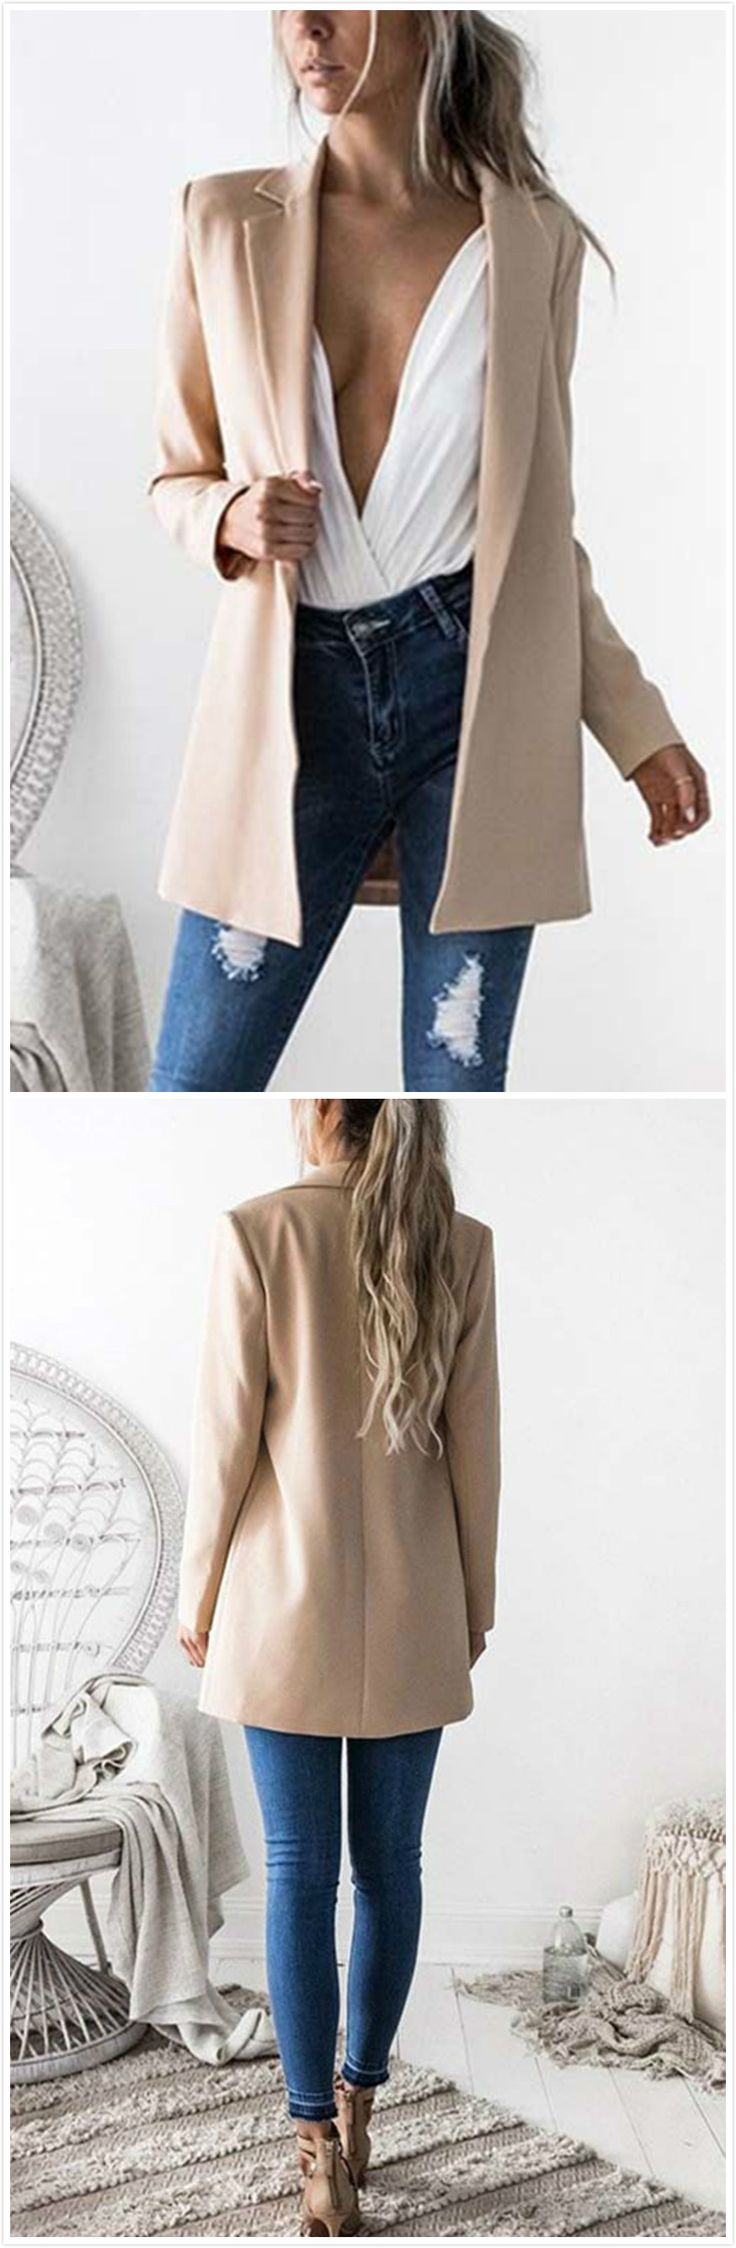 Best fashiony things images on pinterest style clothes